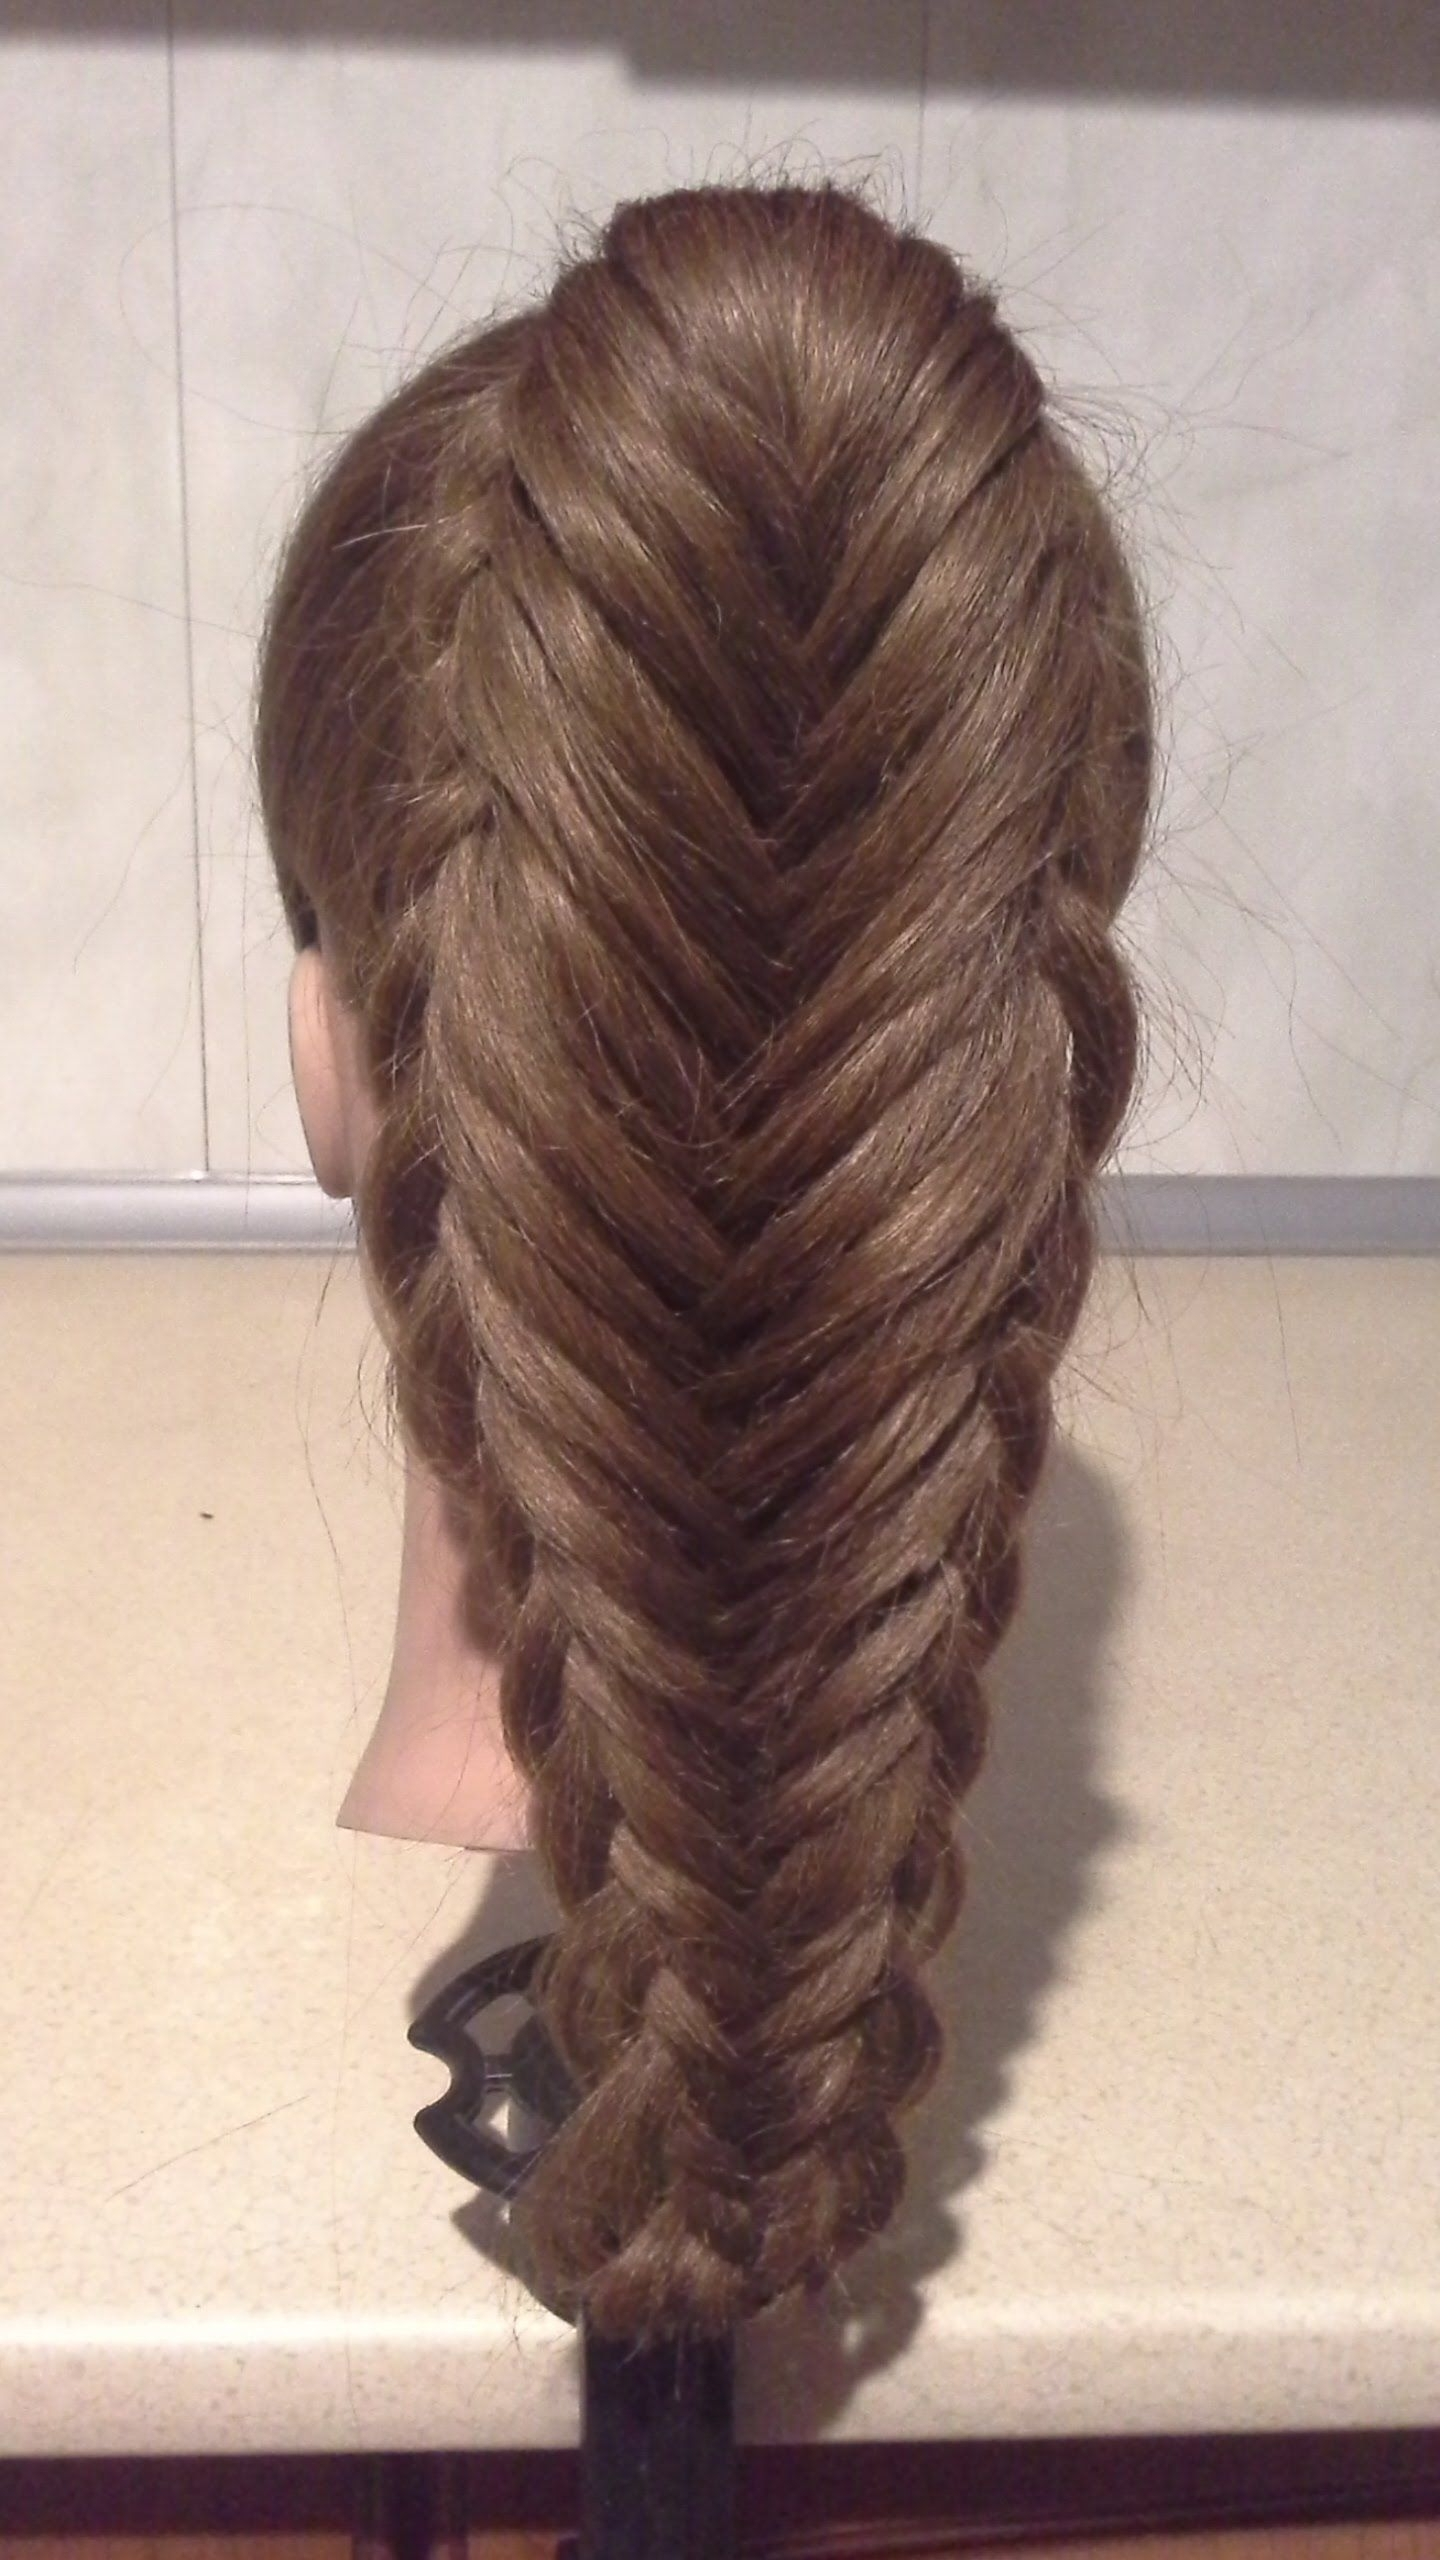 Hair Style Regarding Popular Lattice Weave With High Braided Ponytail (View 6 of 15)